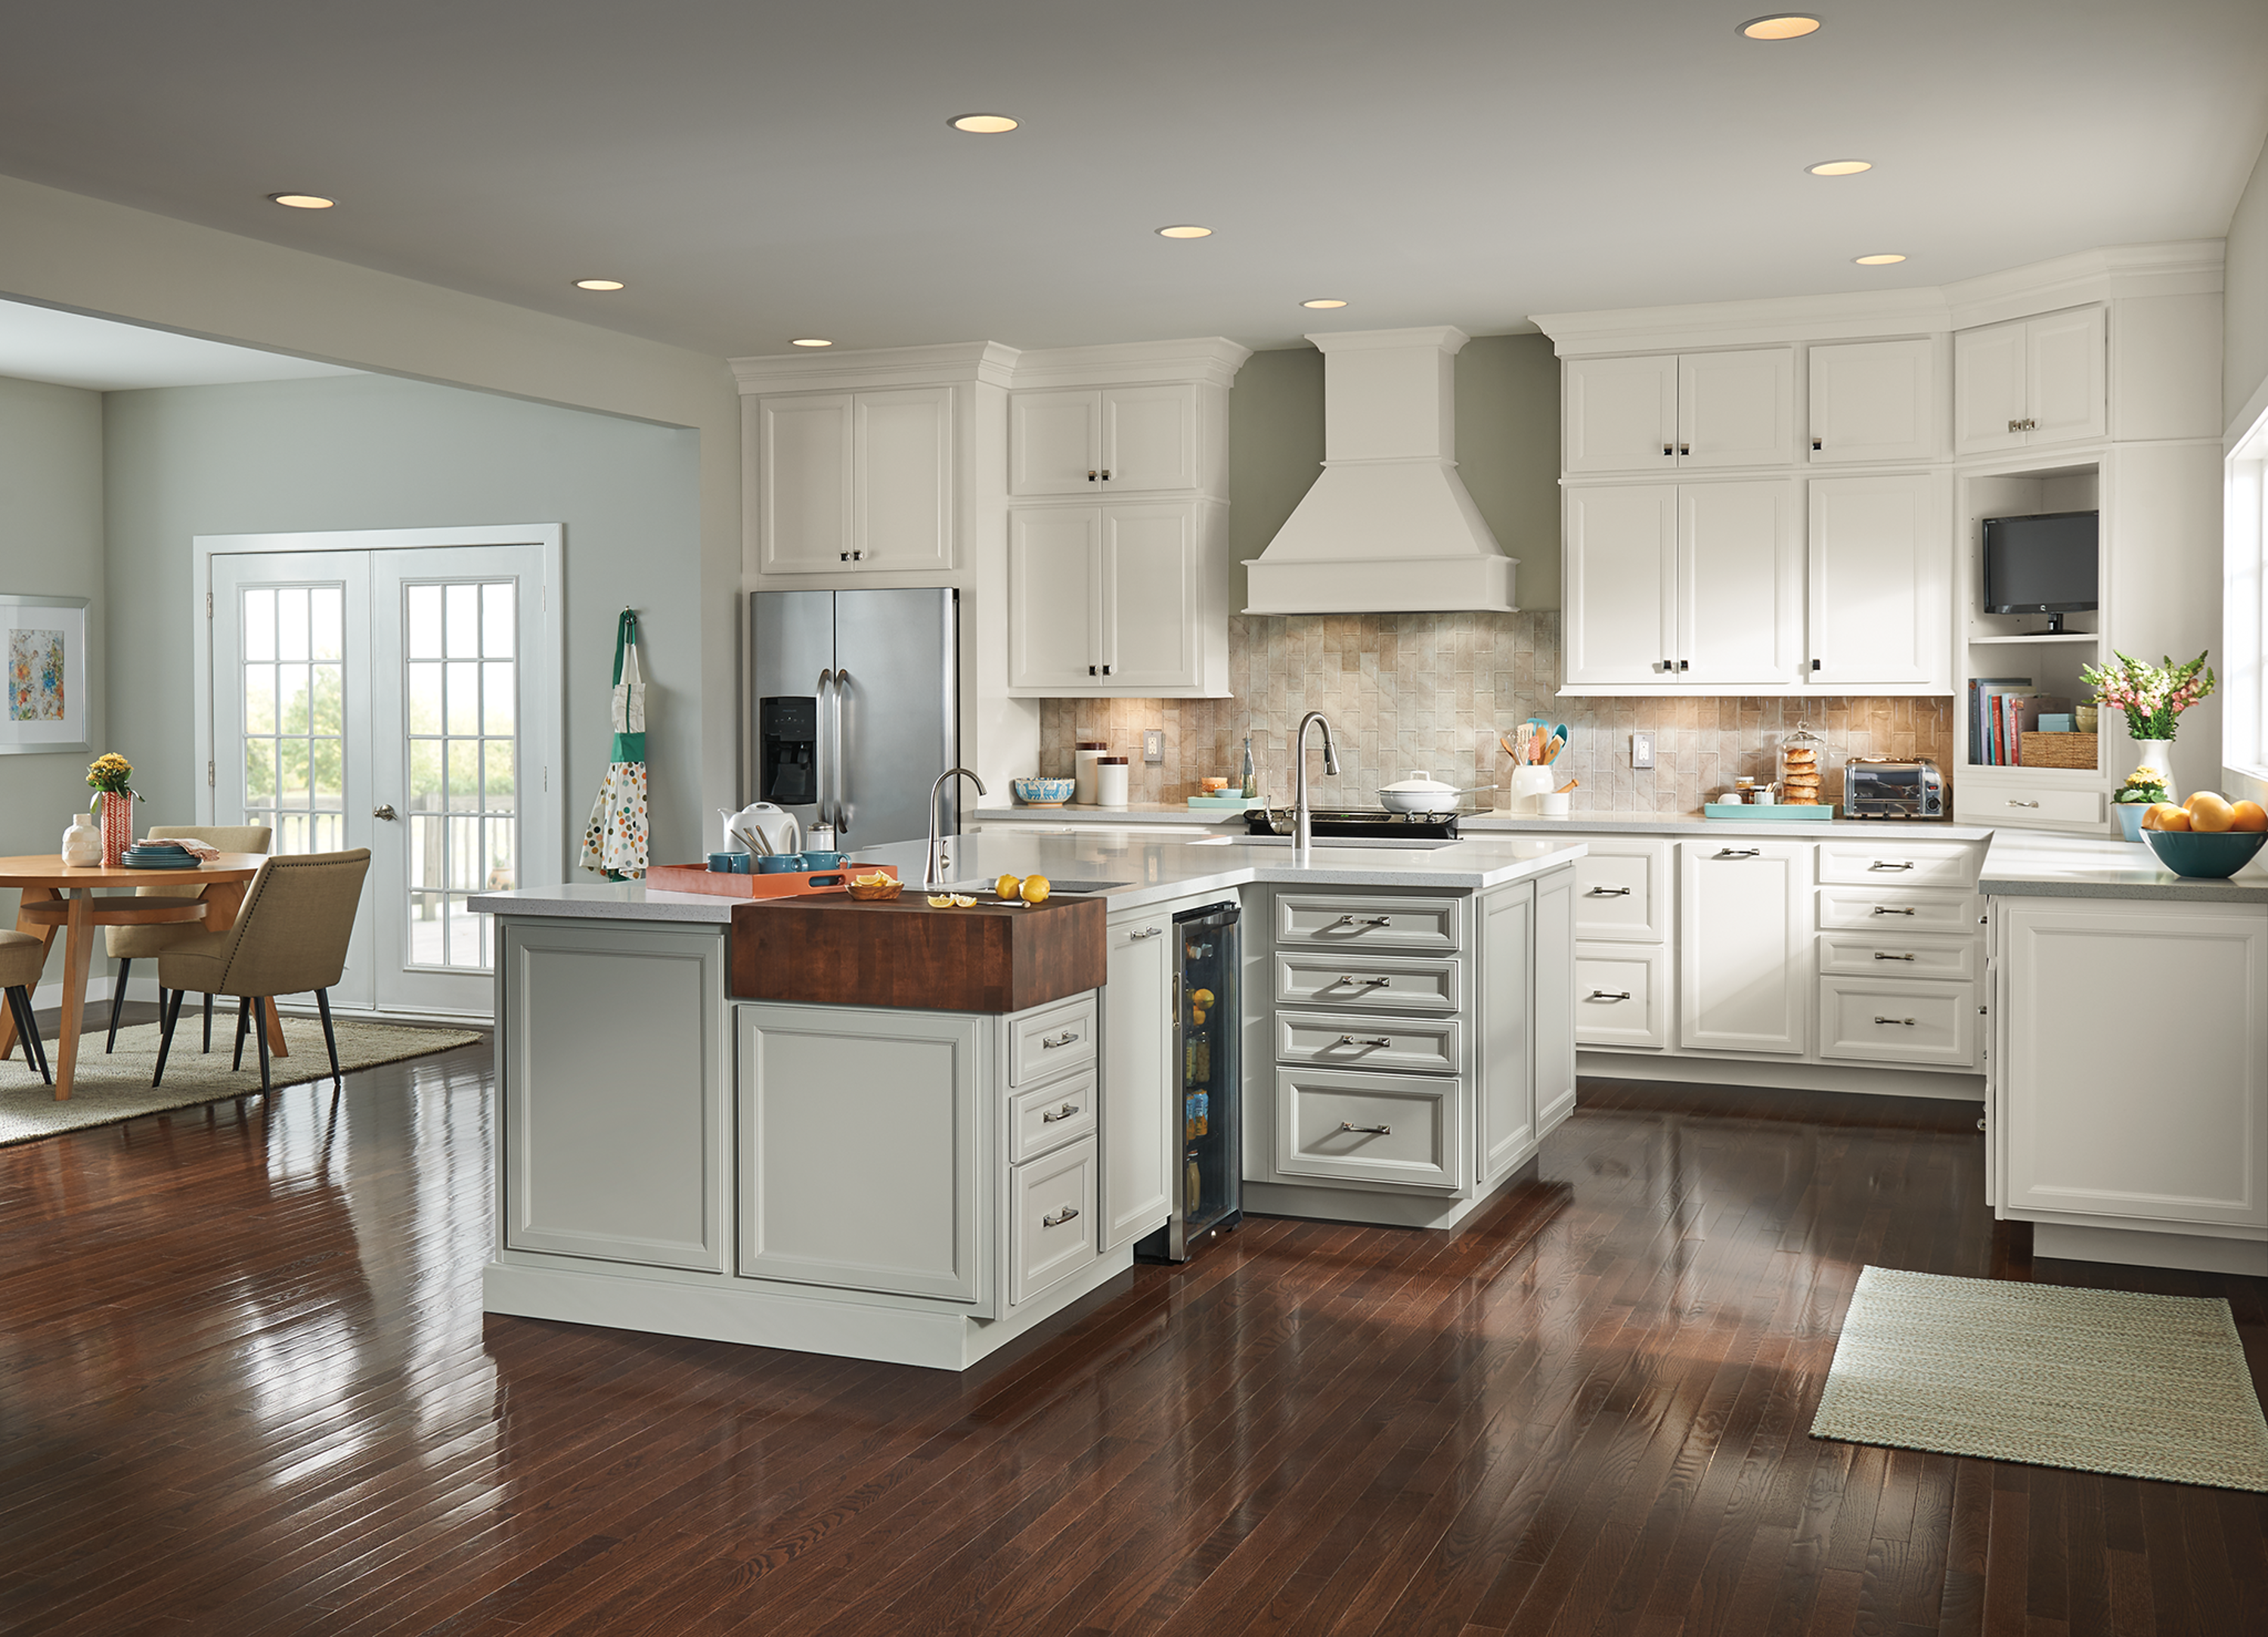 Cardiff Shenandoah Cabinetry From Lowe S Light Grey Kitchens Light Grey Kitchen Cabinets Grey Kitchen Cabinets